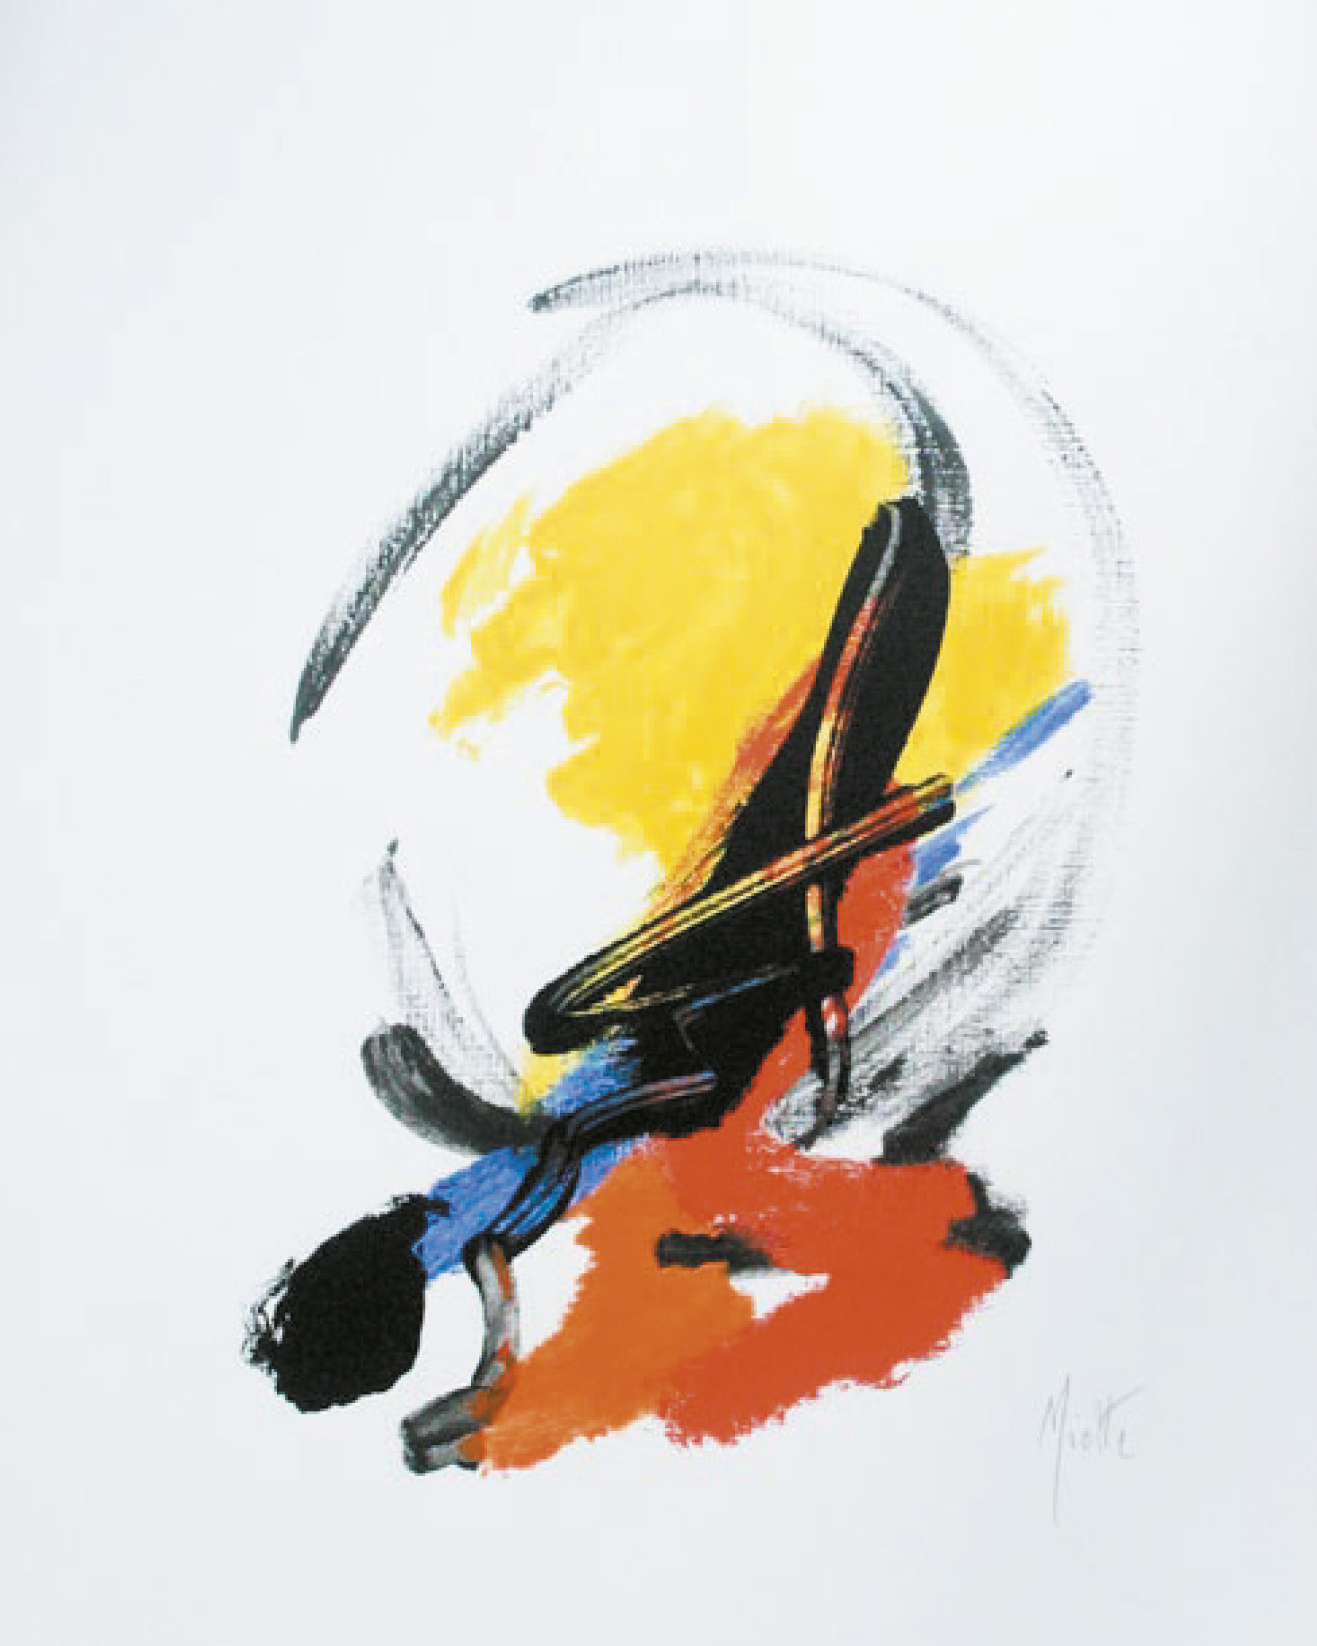 Lot 105 - Miotte Jean (1926) Untitled, 2005 - Serigraph Signed on lower right - 50 x 40 cm -